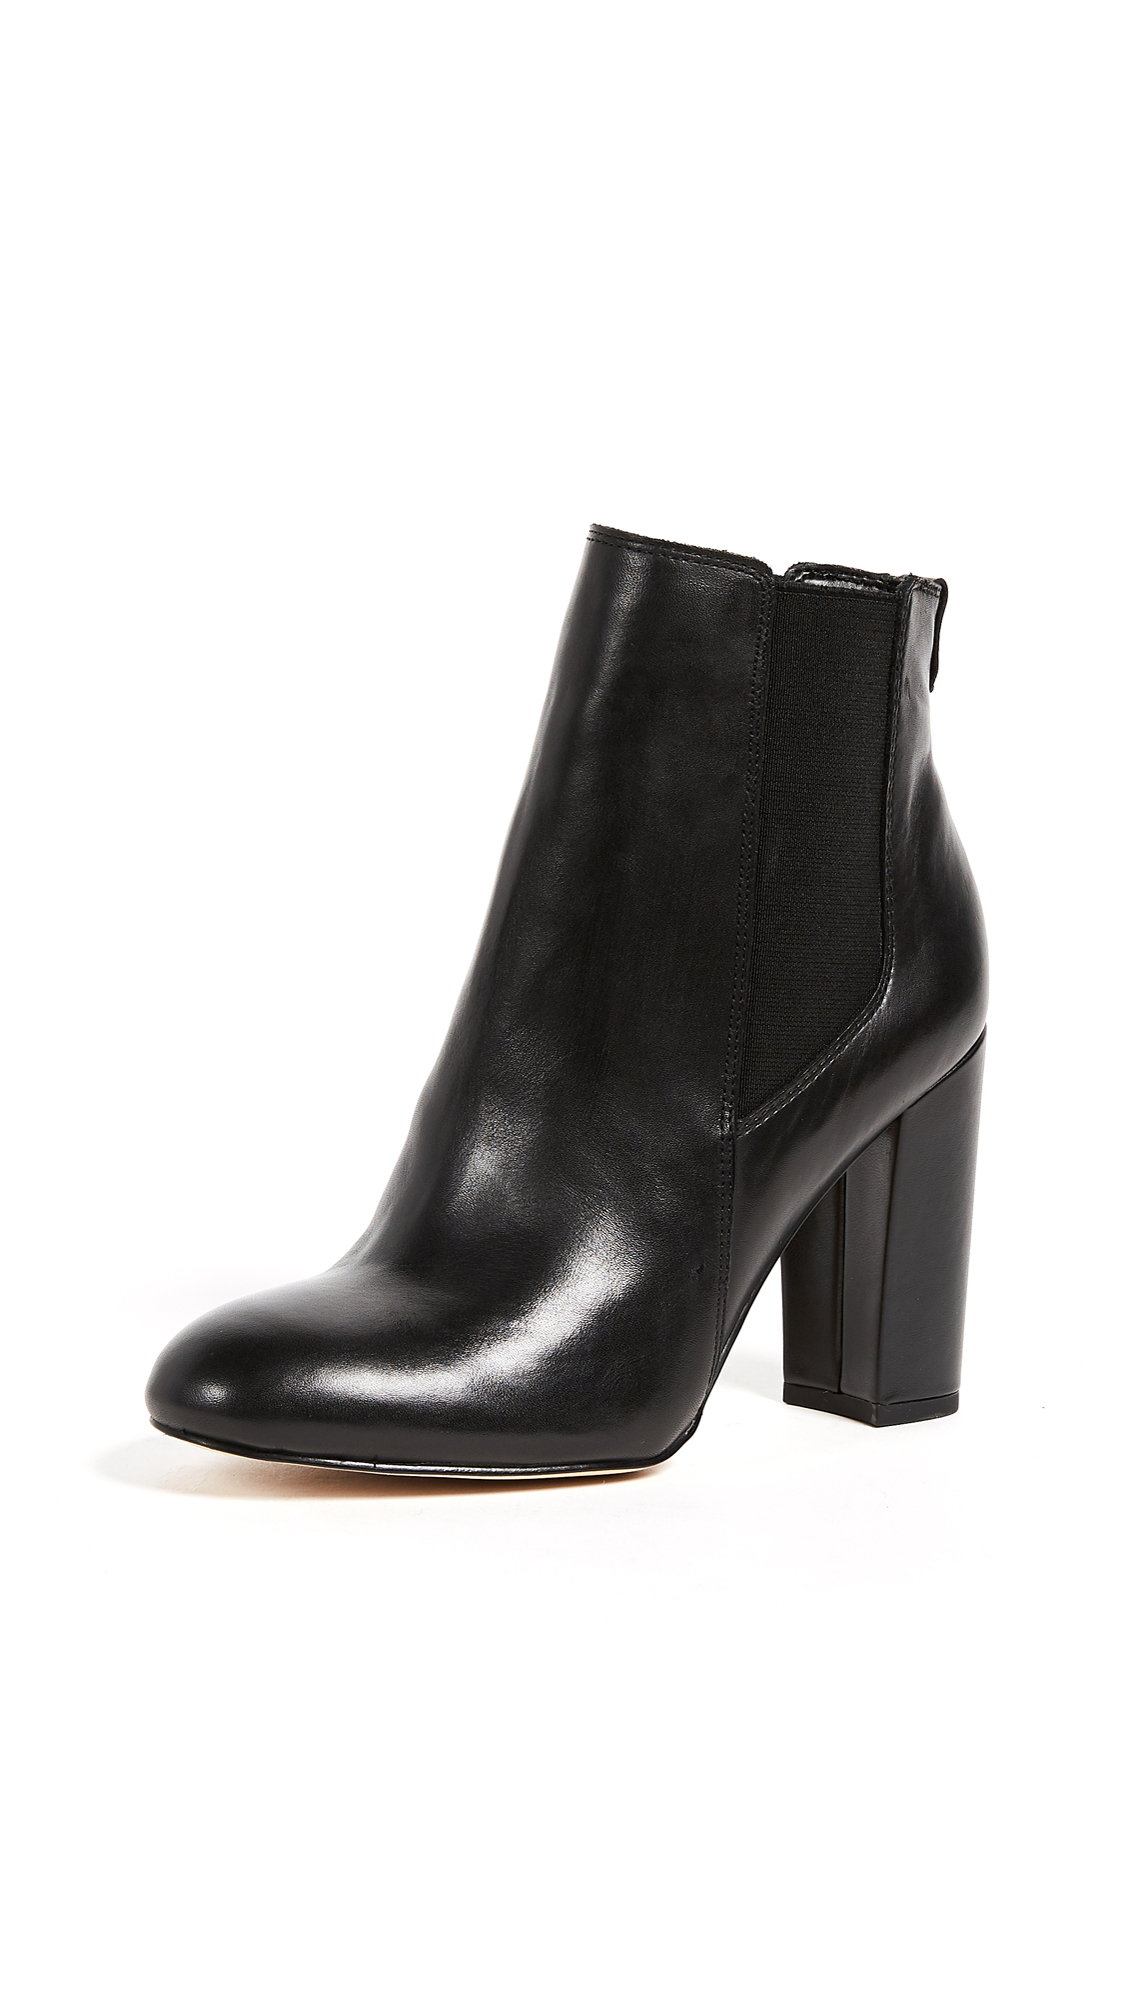 Sam Edelman Case Booties - Black